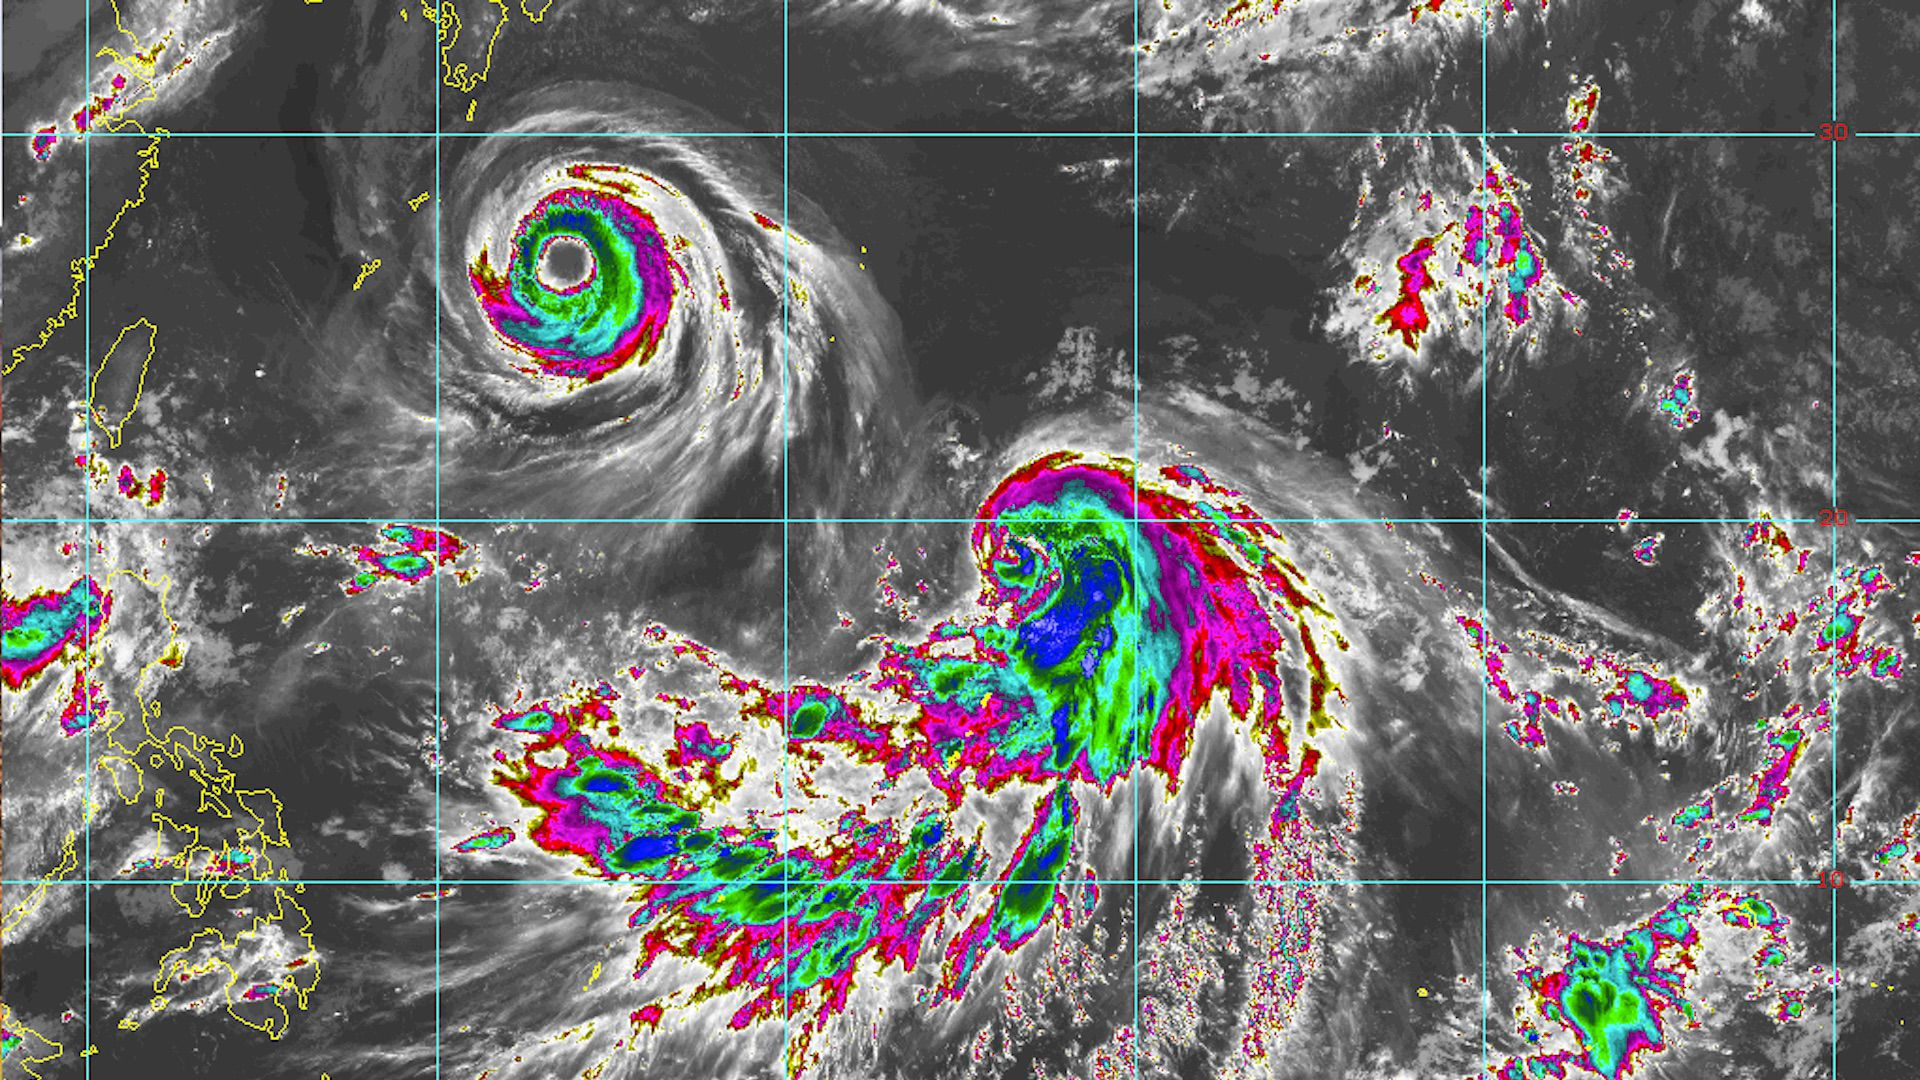 Typhoons Soulik and Cimaron shown in the Northwest Pacific Ocean on Aug. 20, 2018.